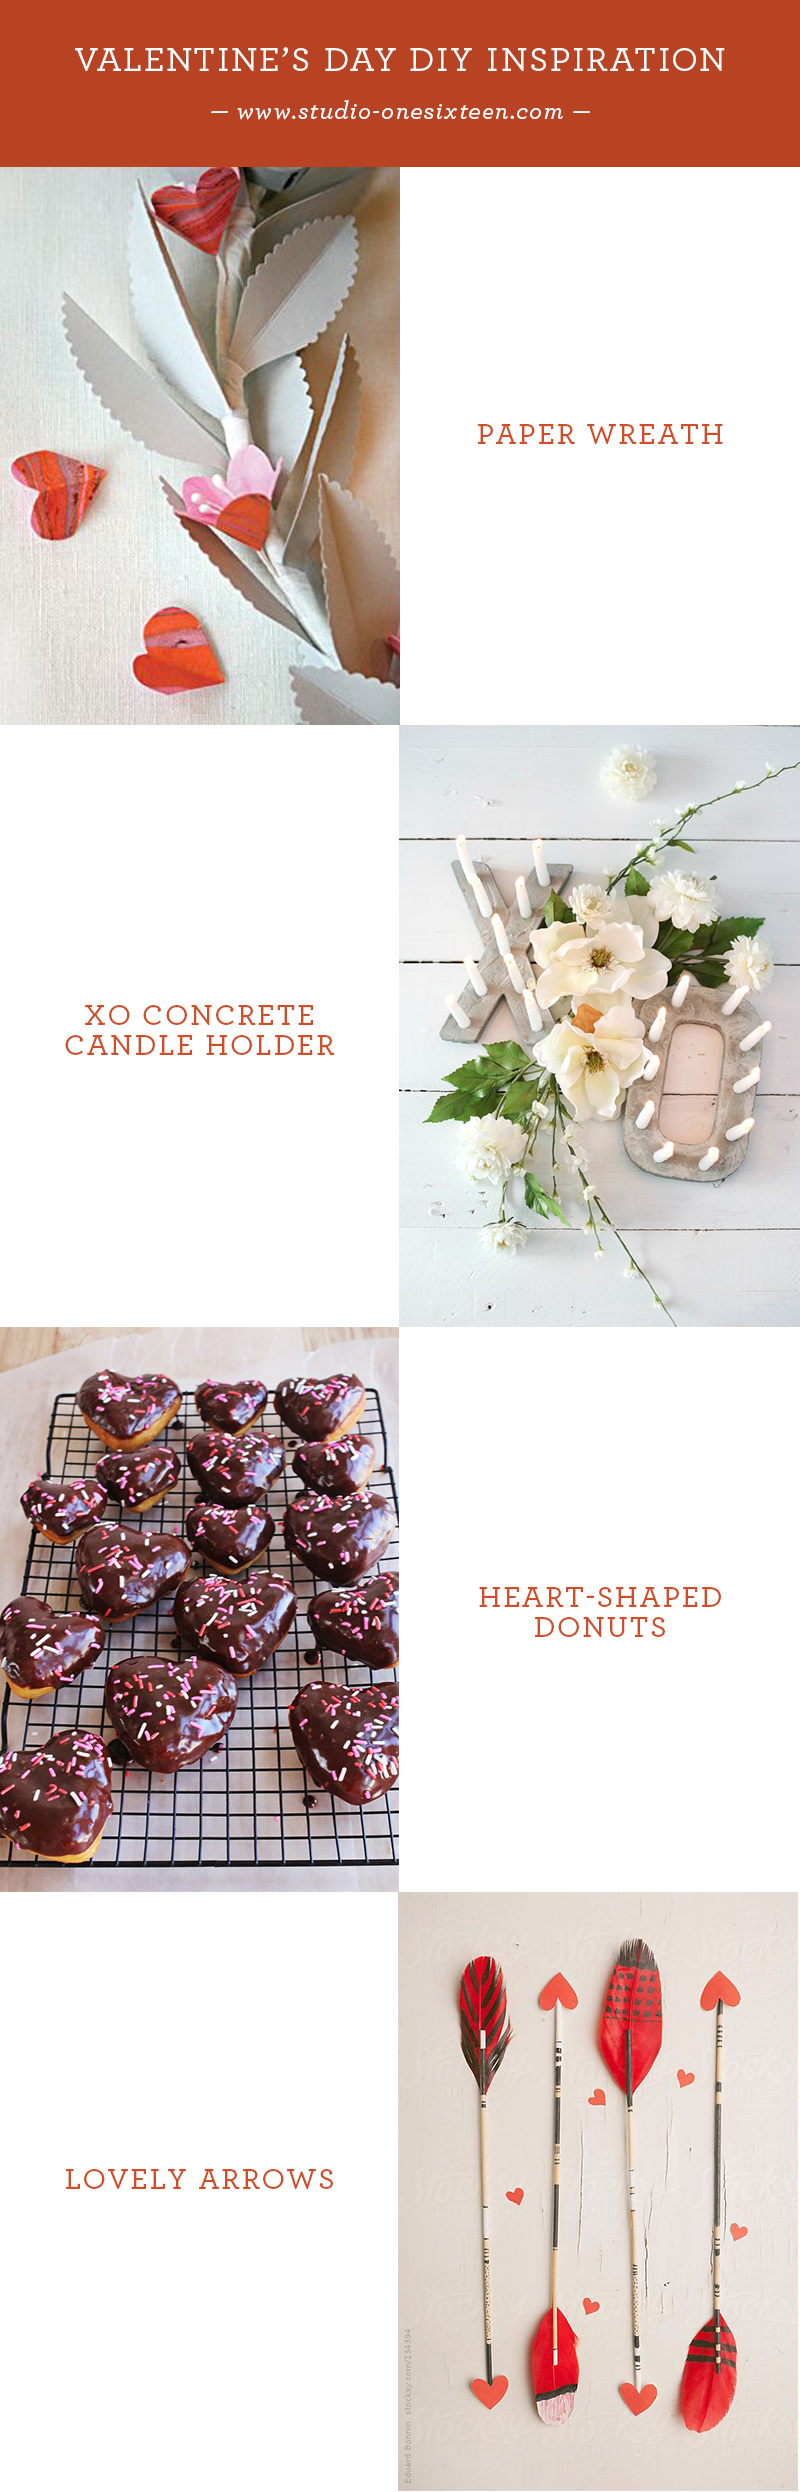 Paper Wreath  /  XO Concrete Candle Holder  /  Heart-Shaped Donuts  /  Lovely Arrows